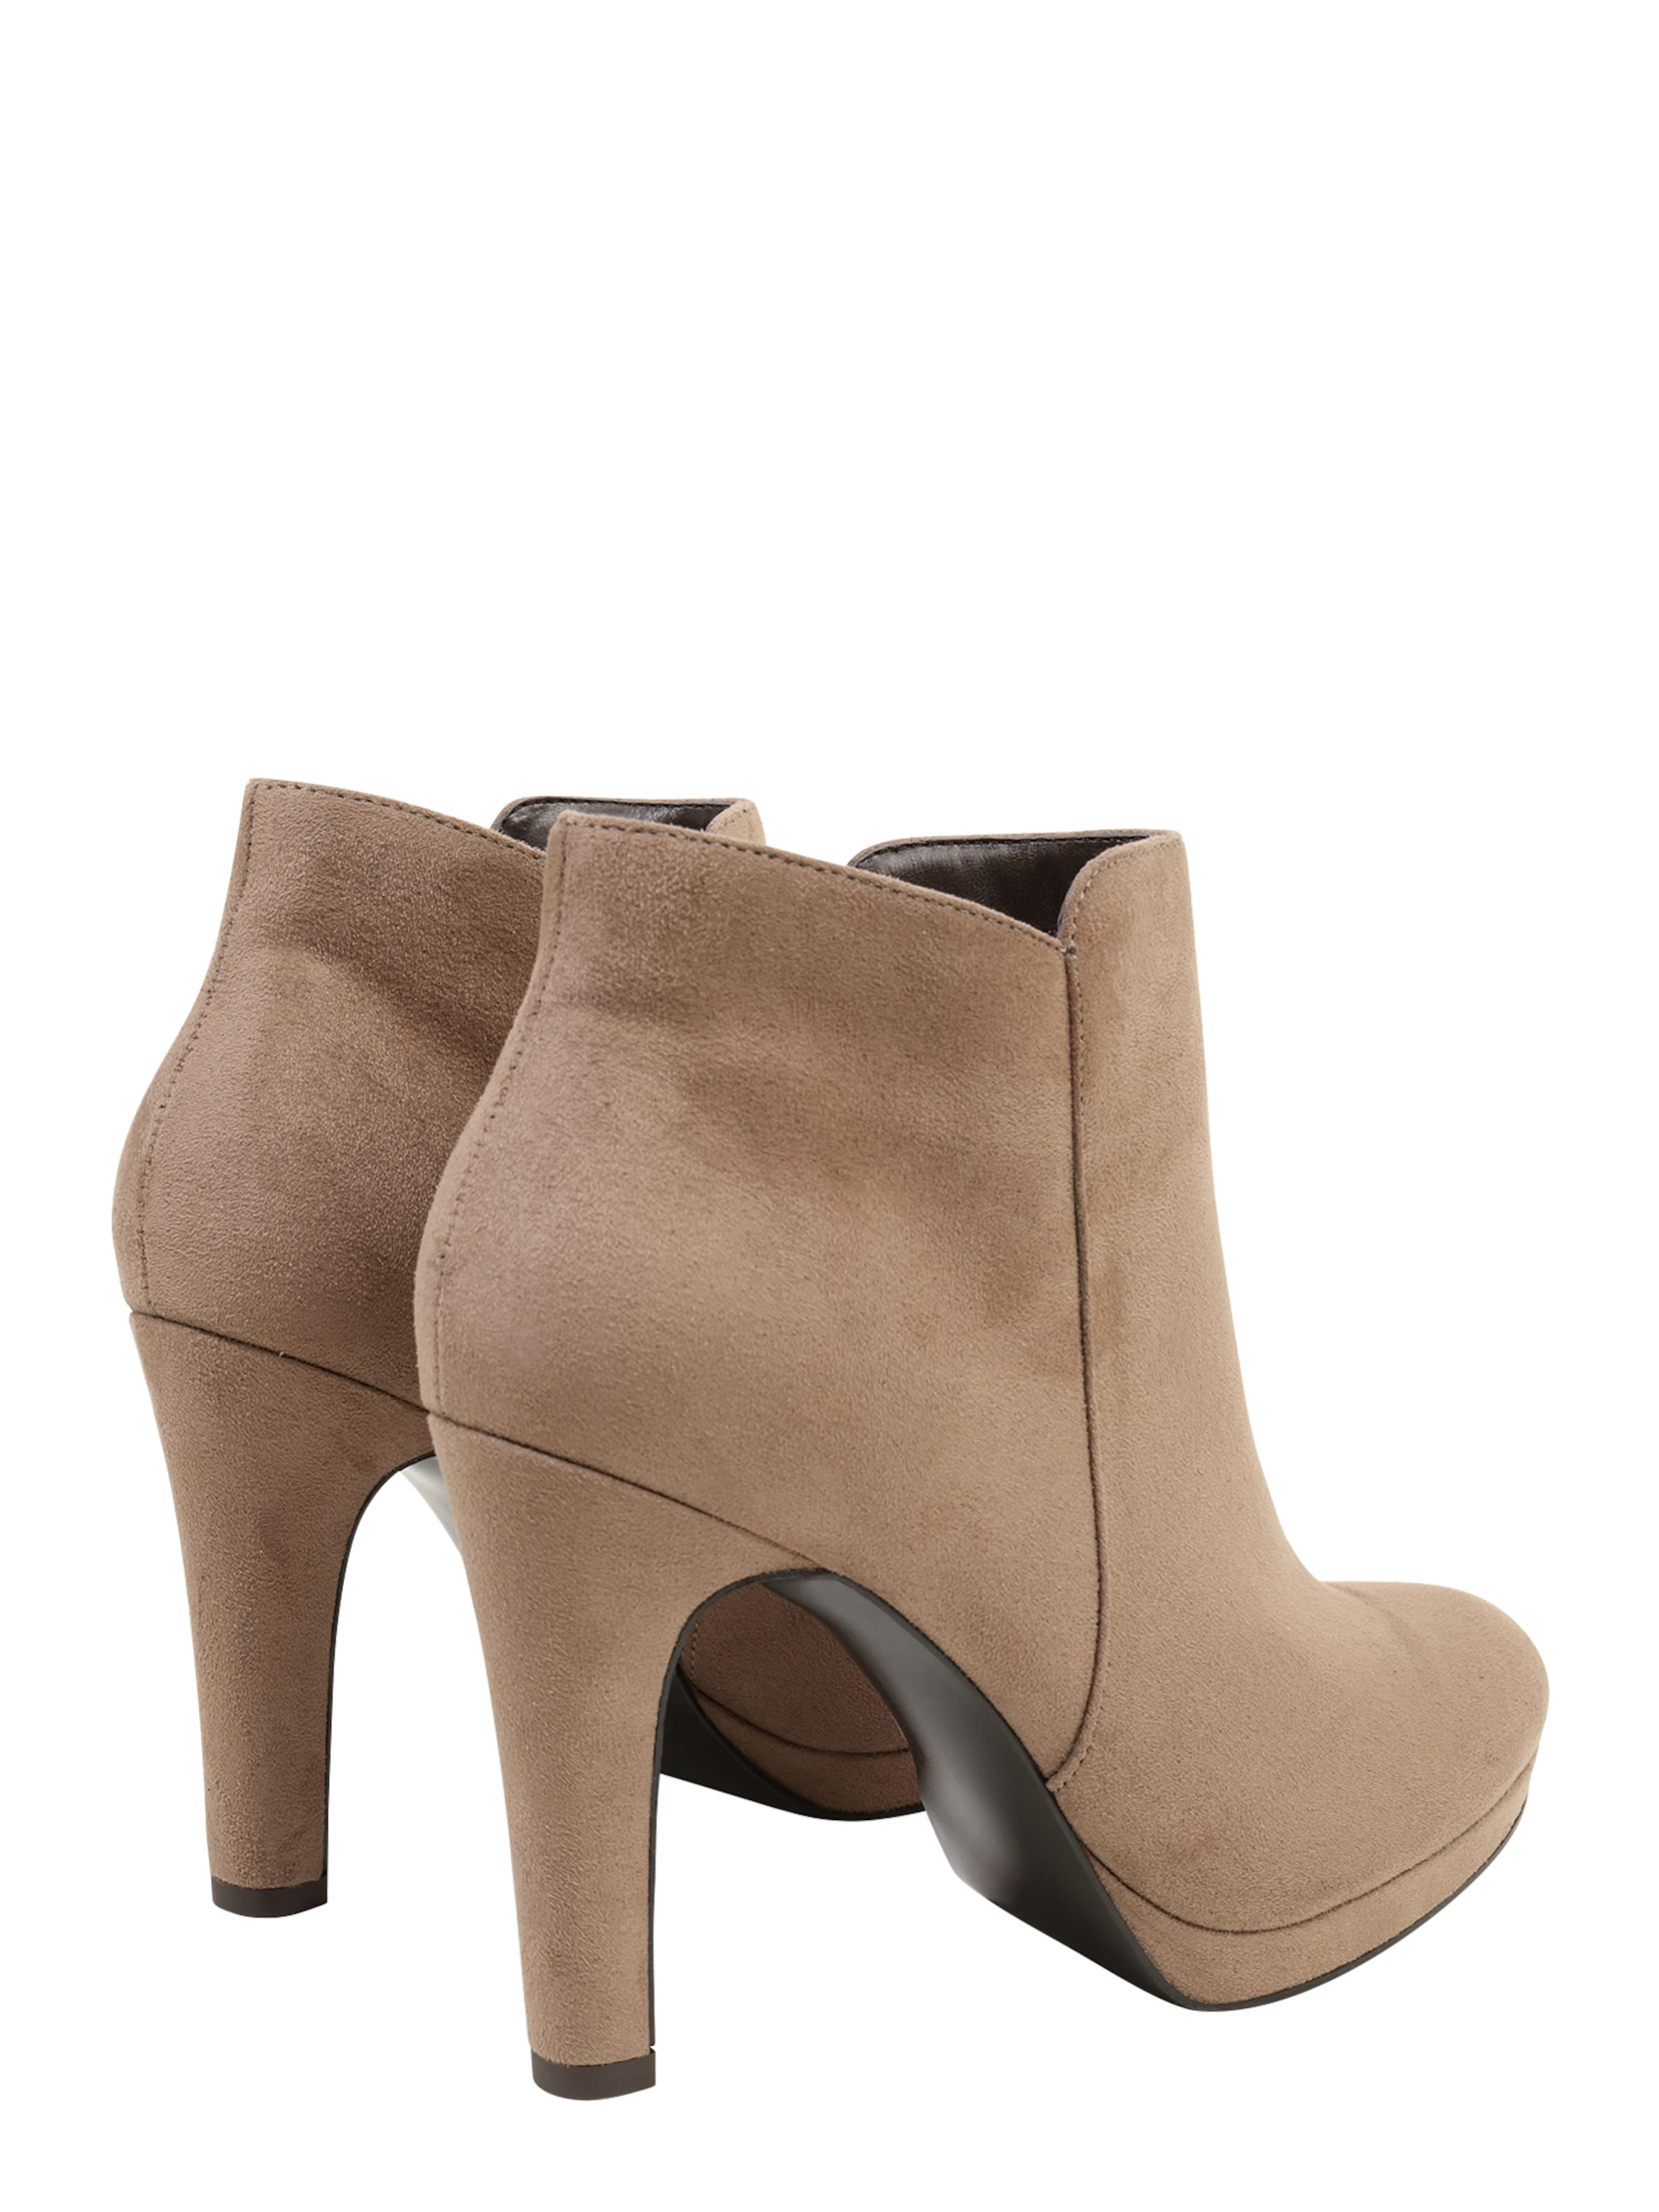 About 'adriana' Beige Boot Ankle You In wlOPXukiZT